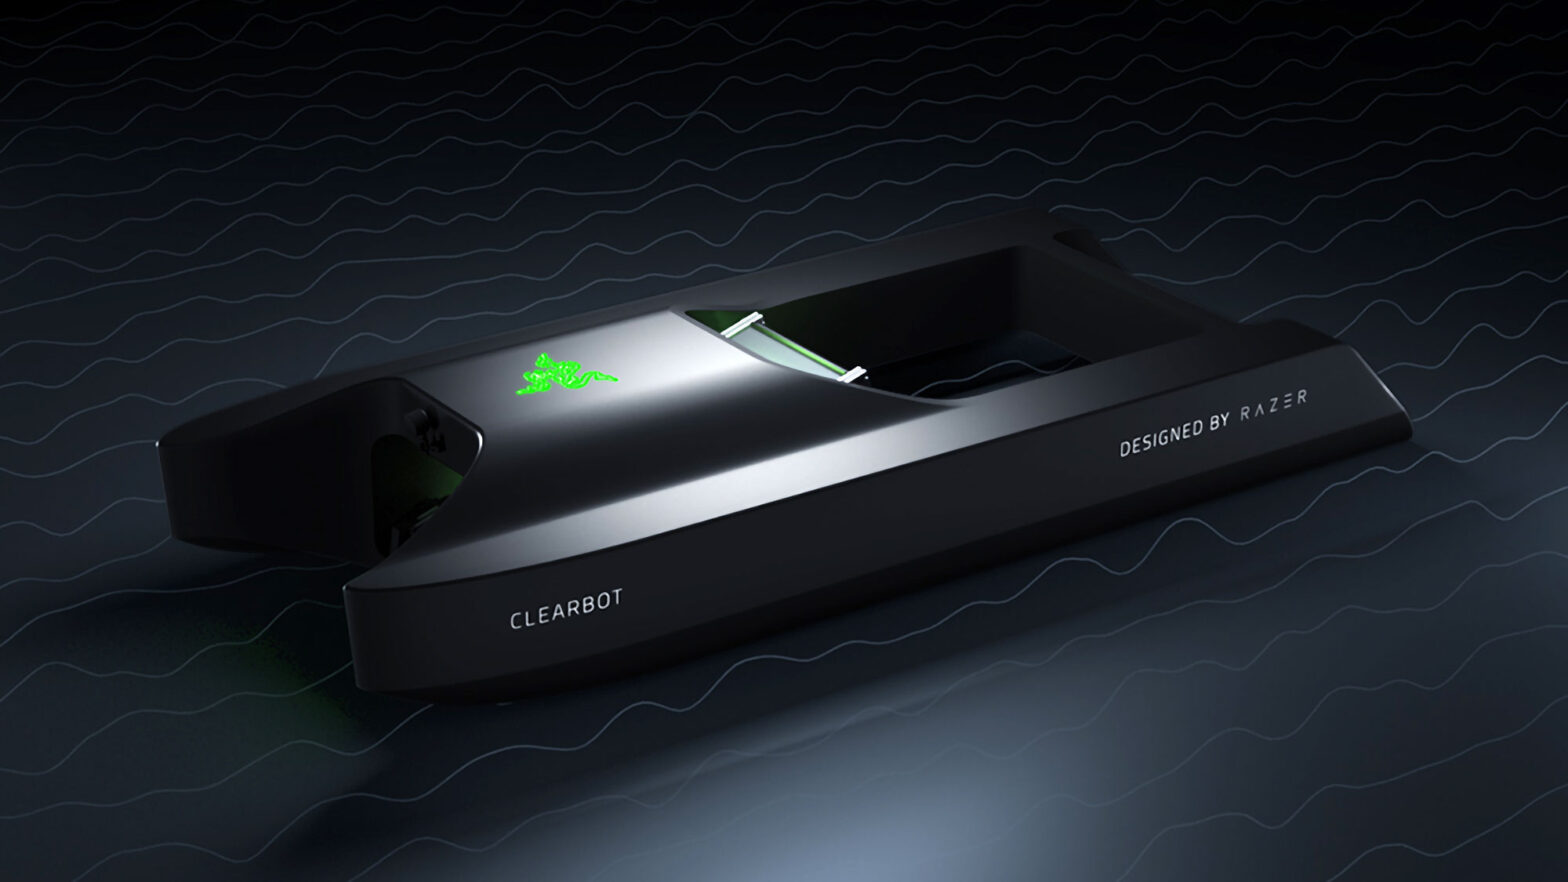 Razer x Clearbot Automated Ocean Cleaning Robot